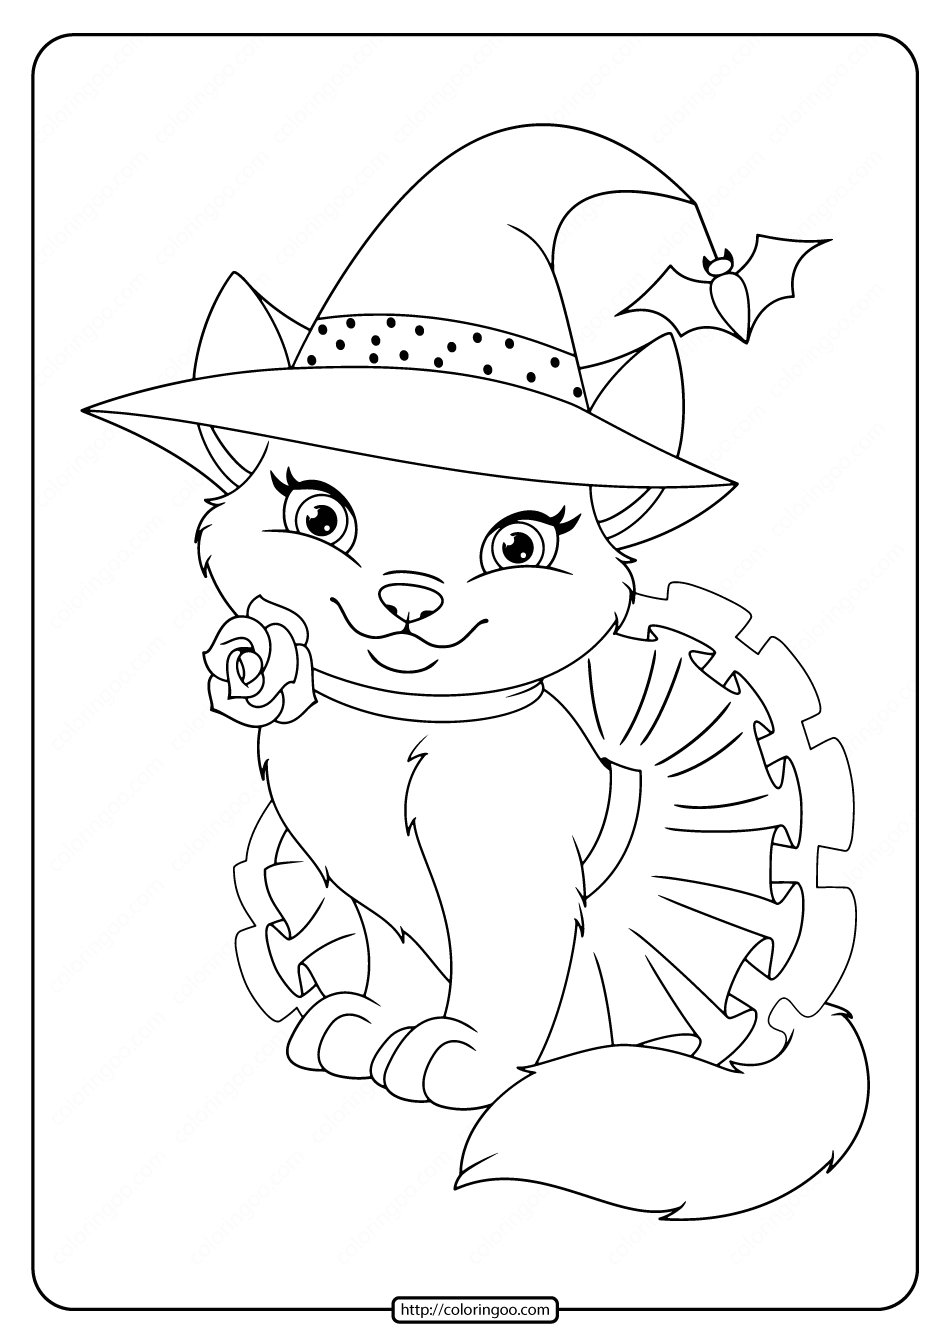 Printable Cute Halloween Cat Coloring Pages